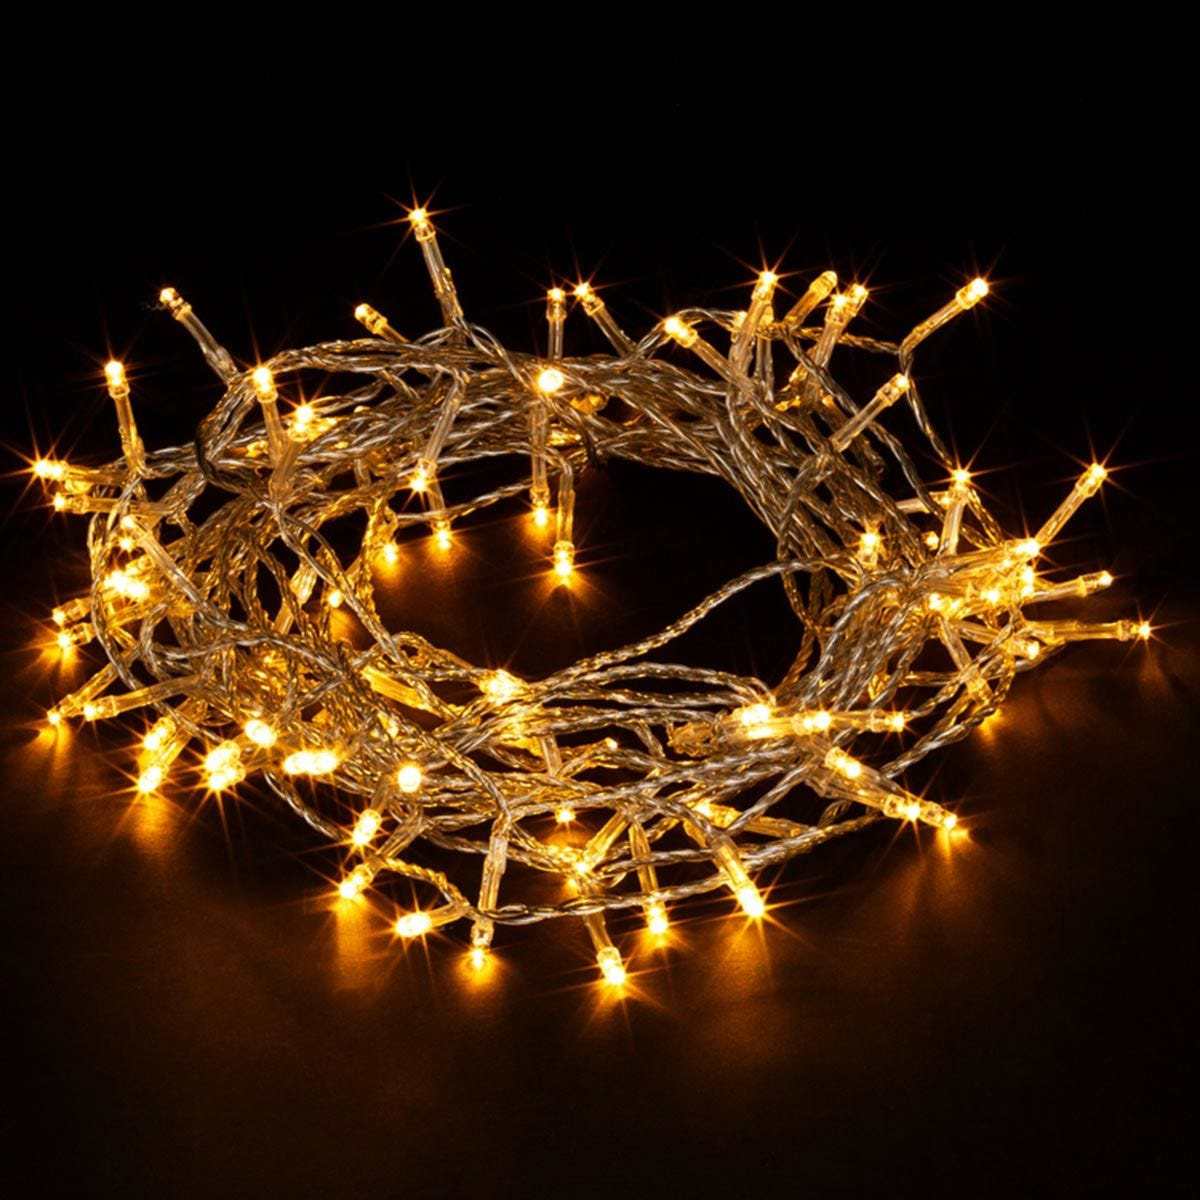 Robert Dyas Battery Operated LED Transparent String Lights - Warm White